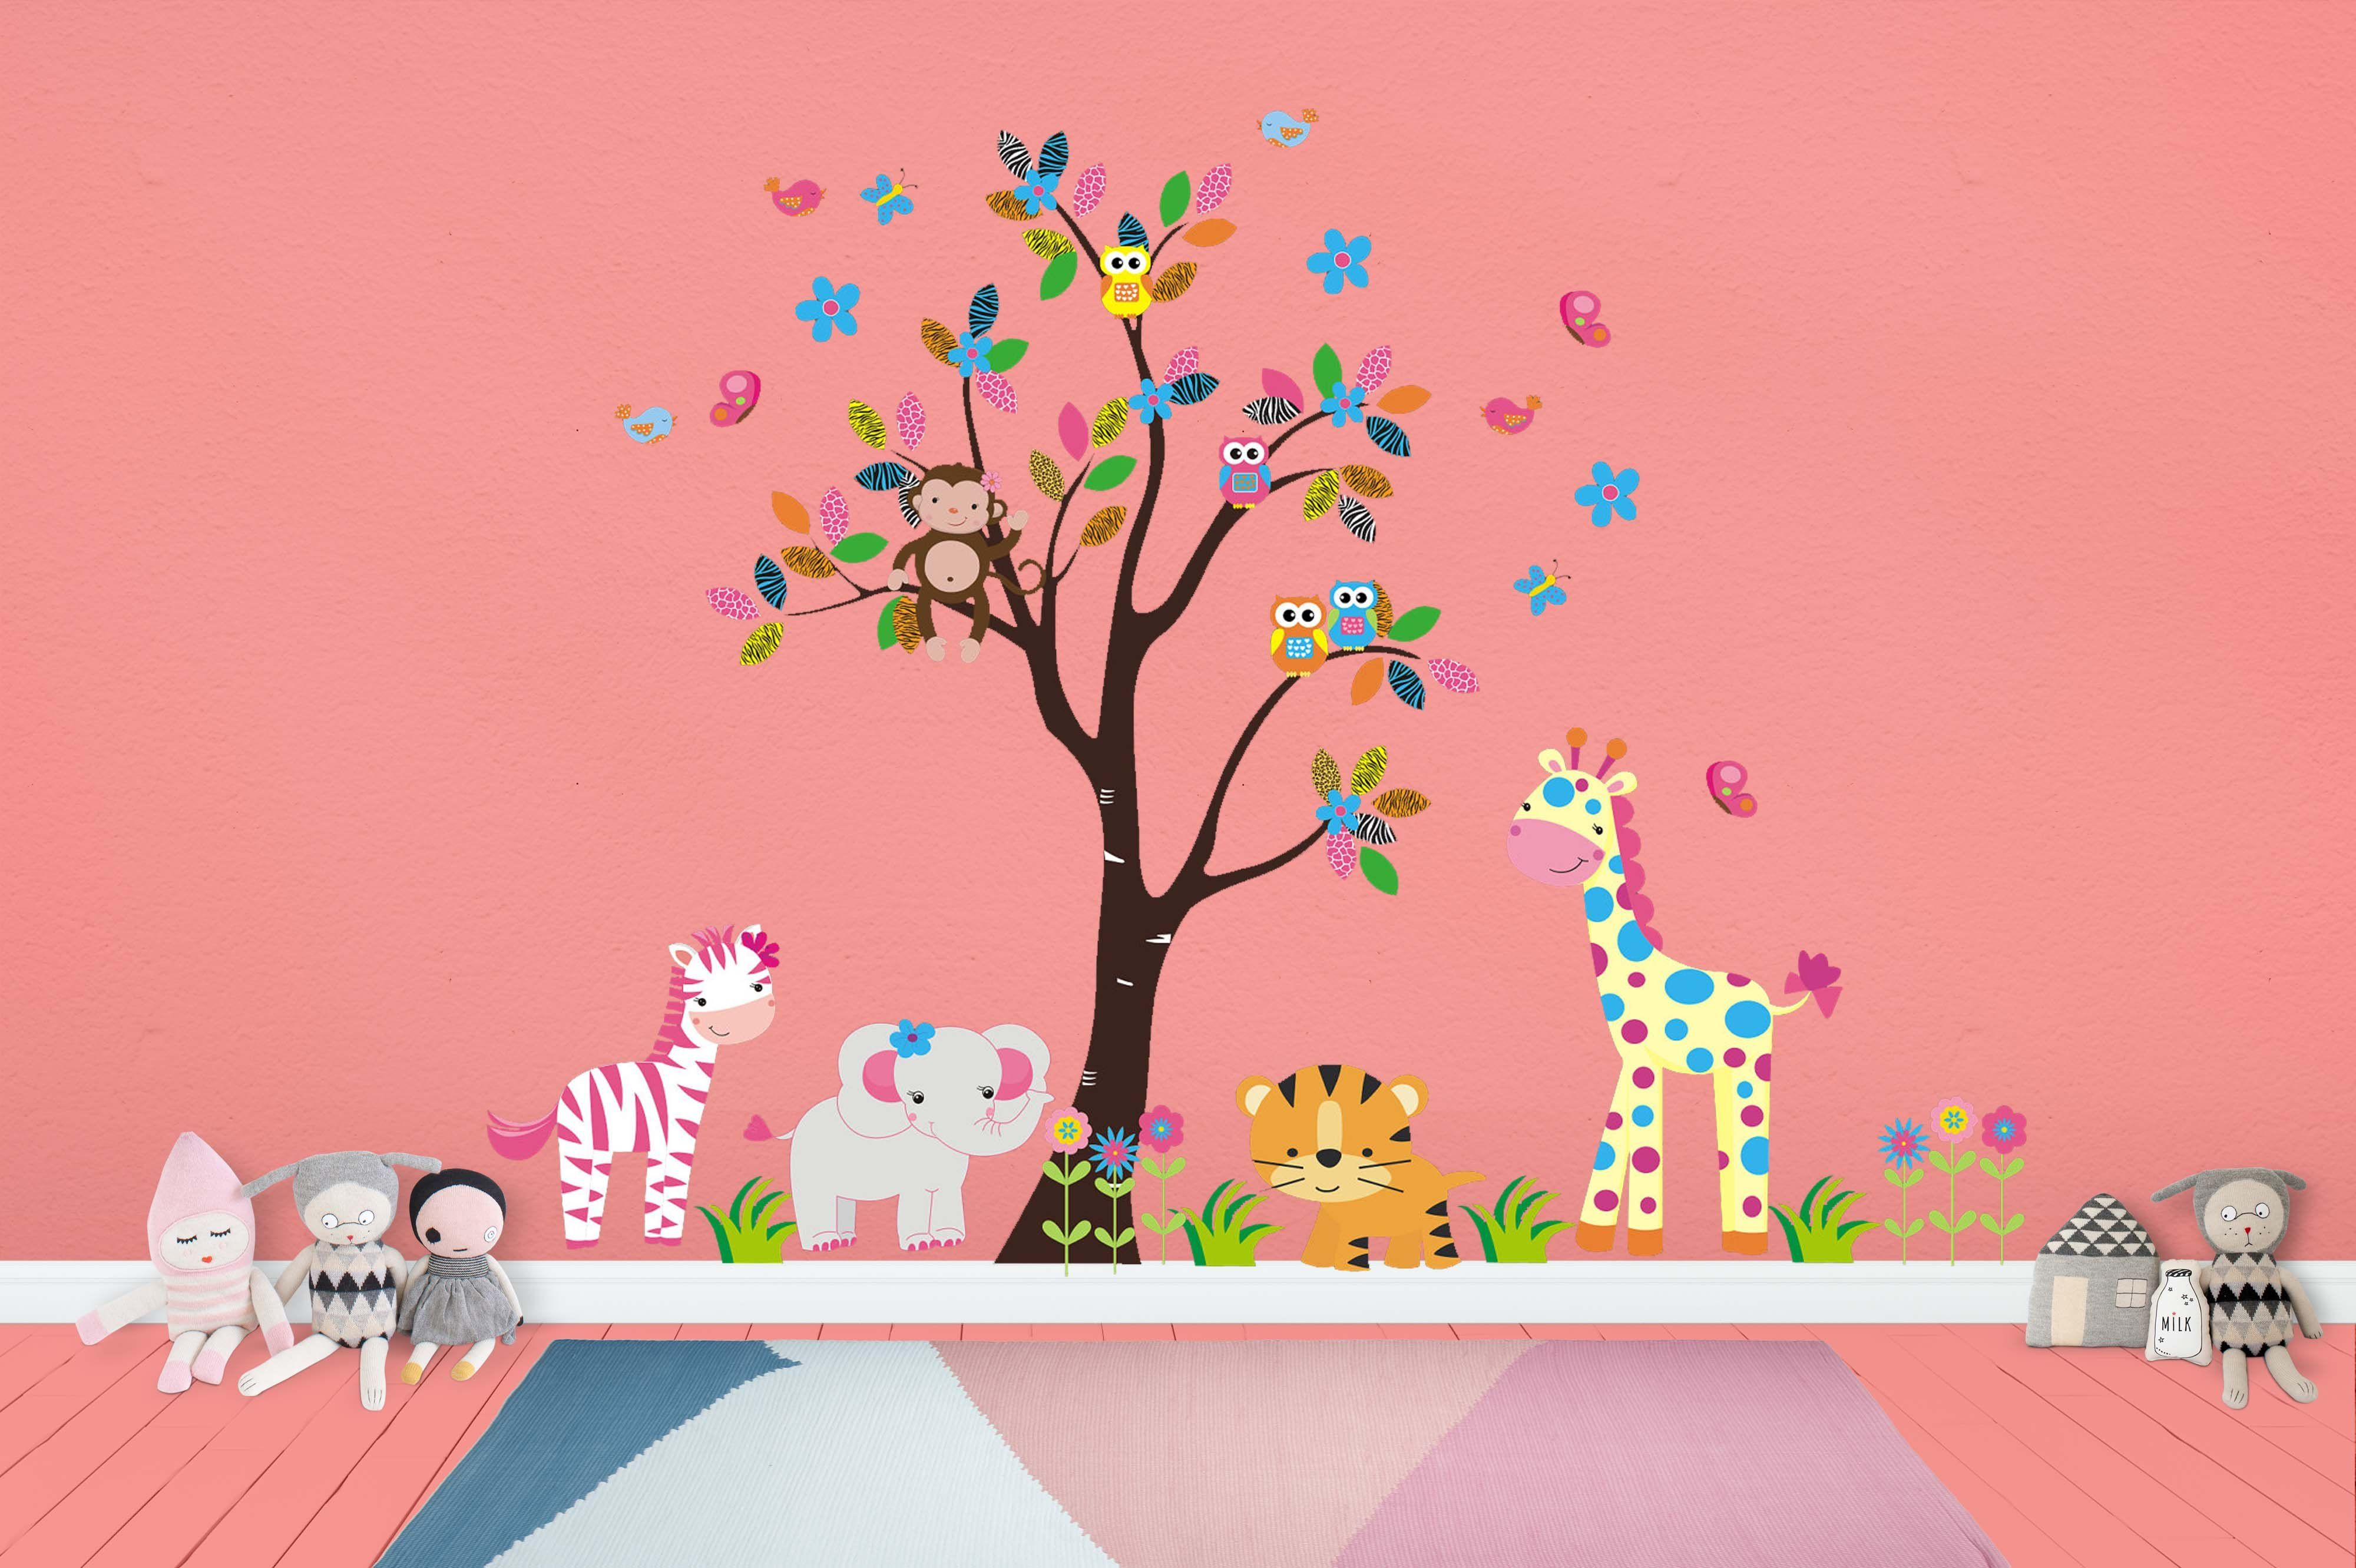 Fun Color Wall Decals Cute Animal Wall Stickers Peel And Stick Nursery Decals Nature Wall Art Zoo Animal Wall Mural 85 X 105 Nursery Wall Stickers Nursery Decals Wall Stickers